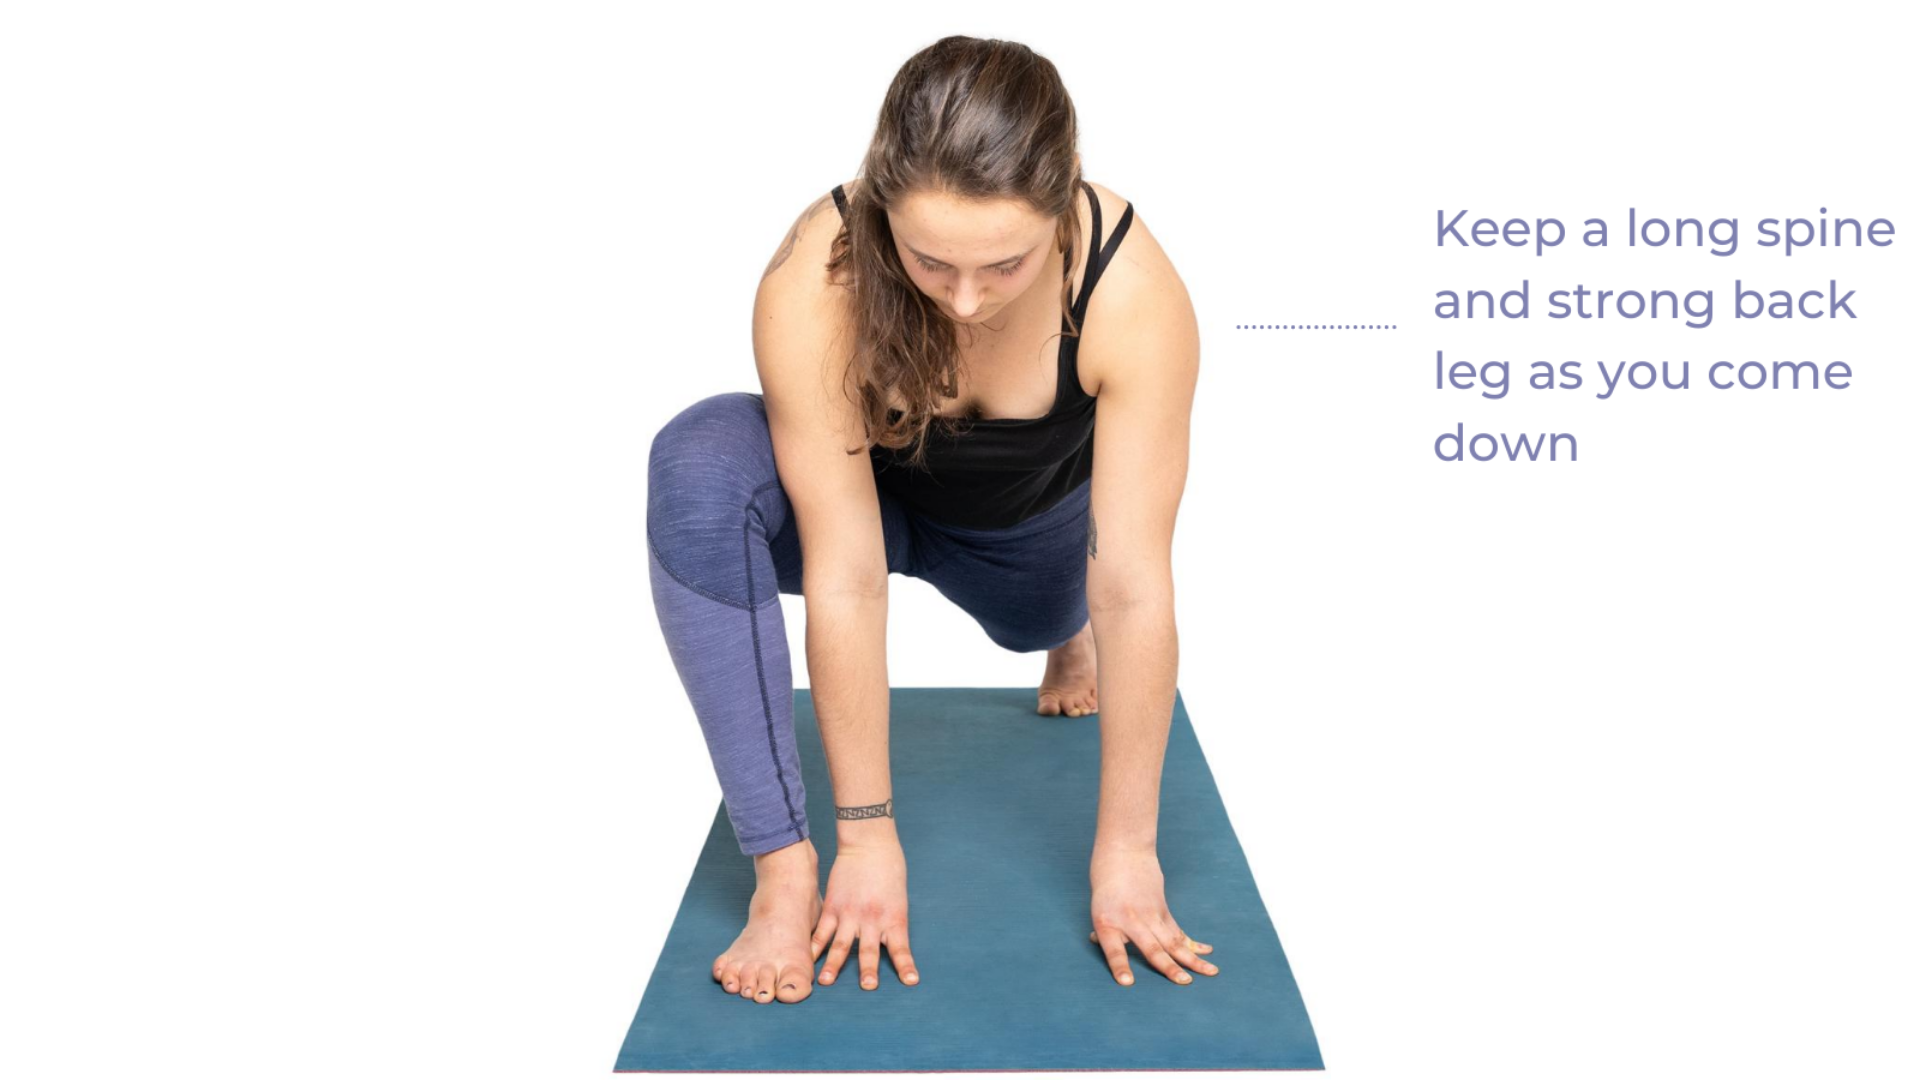 Yoga teaching tips to activate your lower body in Lizard Pose (Utthan Pristhasana) for stability and enjoyment